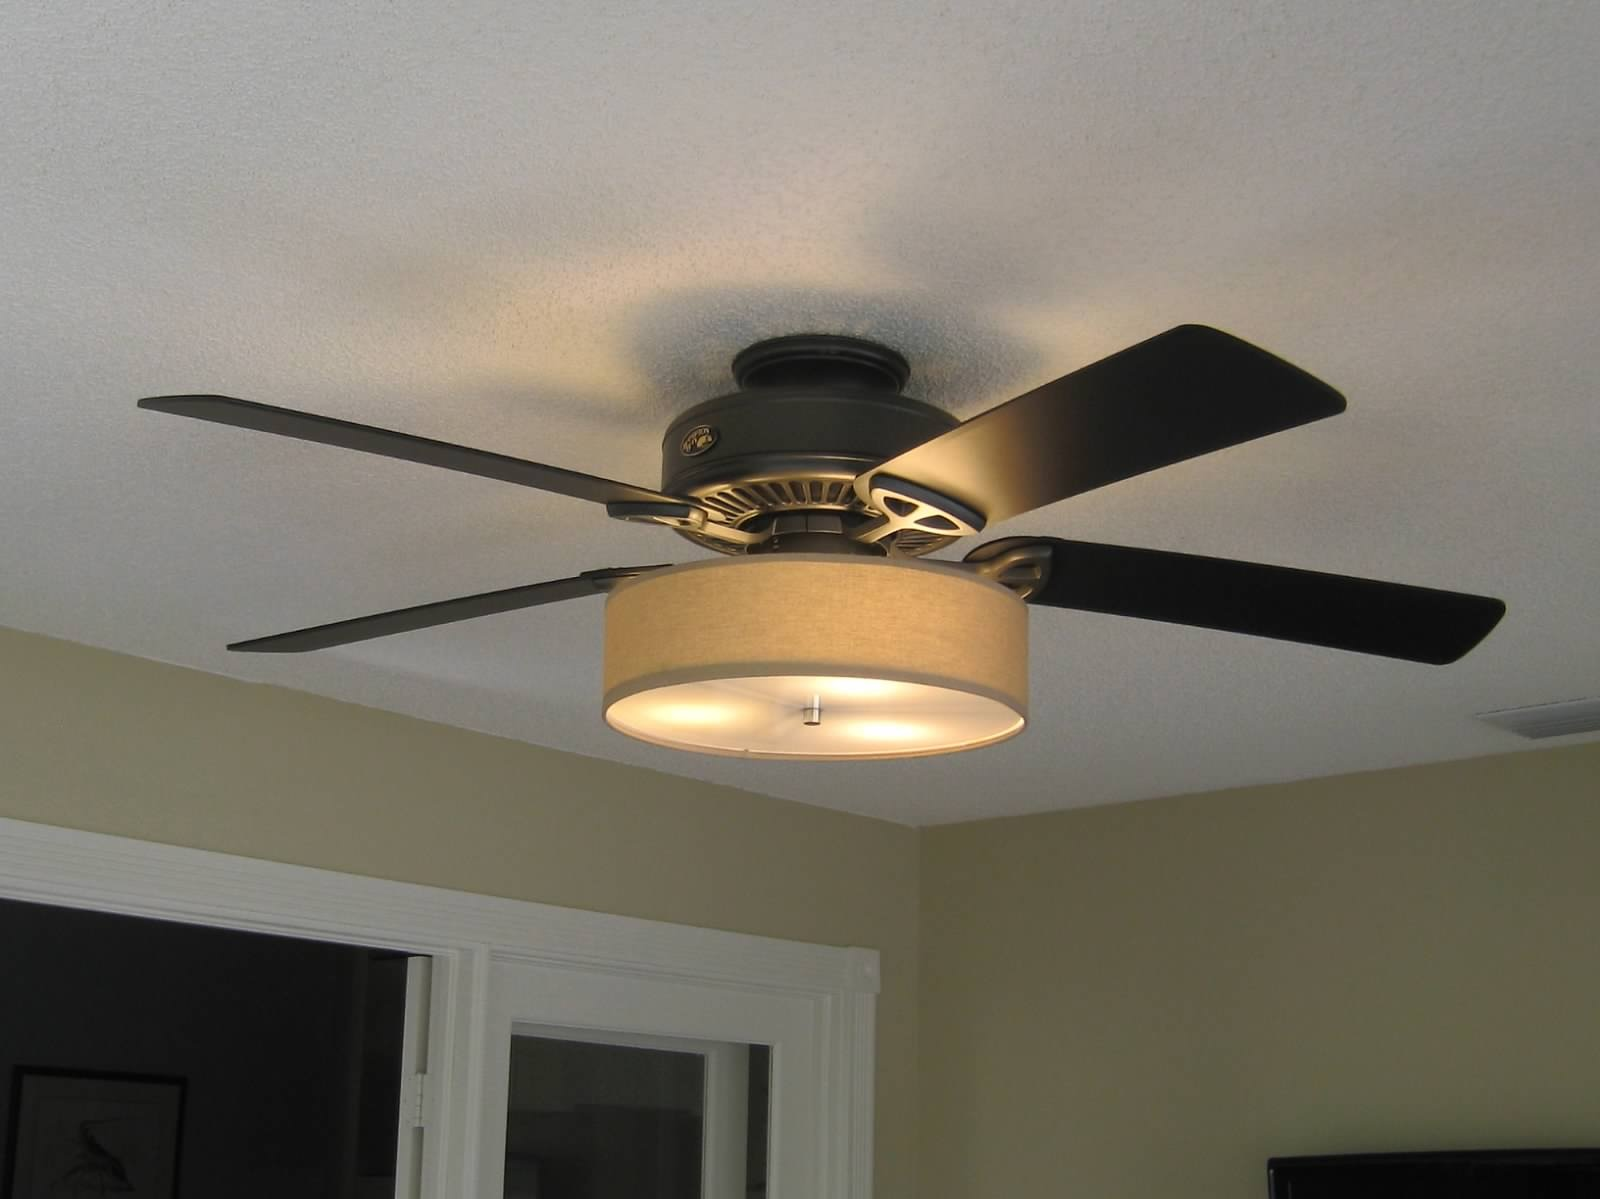 kit fixtures fan light ways beautiful to ceiling lighting awesome house install